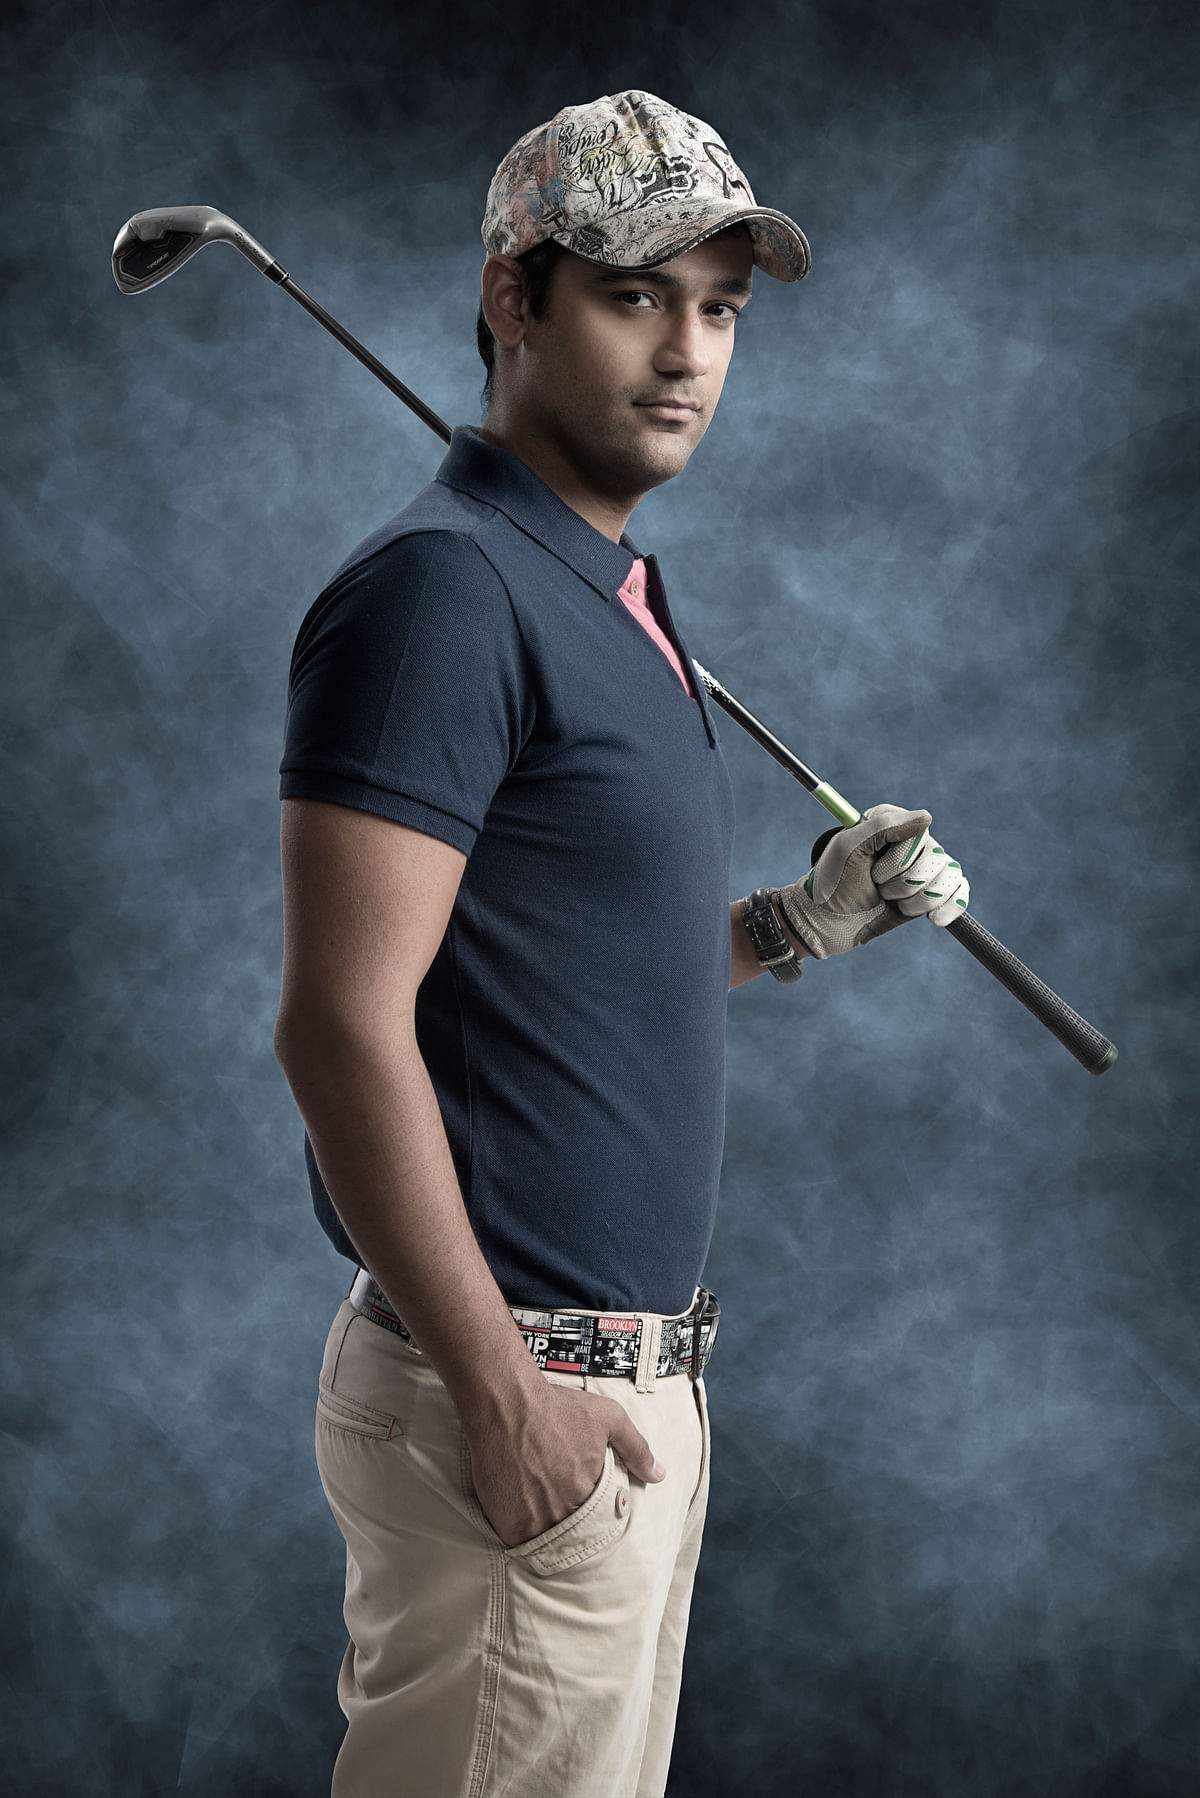 Rehan has embraced golf in the second innings of his sporting career